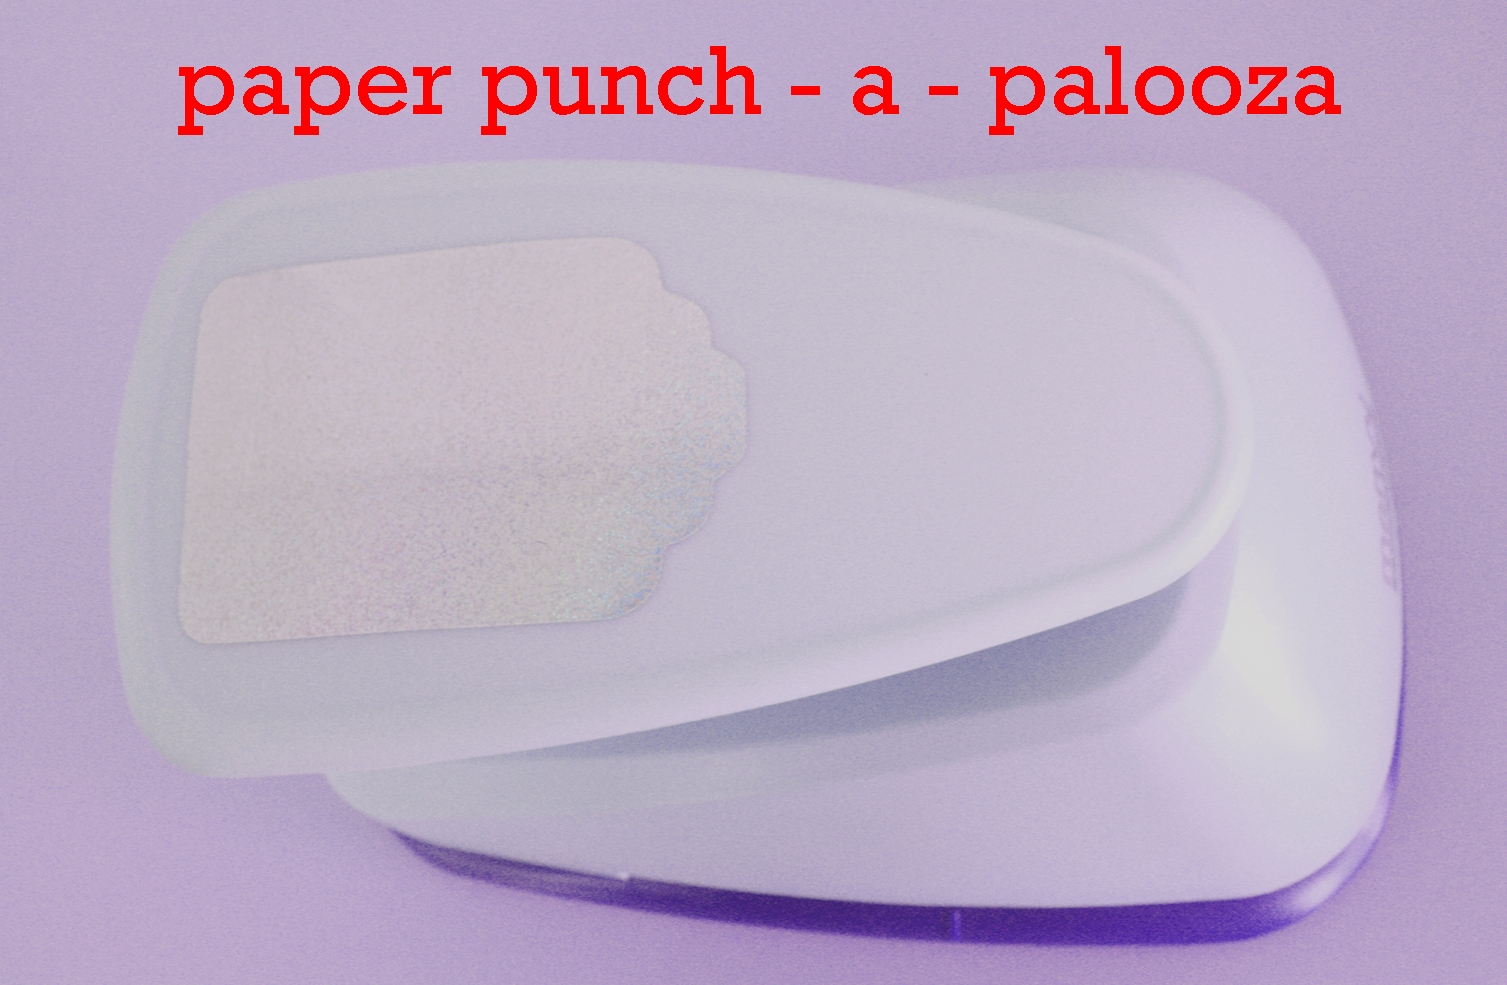 paper punches Order craft paper punches today get essential office supplies fast with free 2-3 day shipping, plus daily deals, coupons and gifts with purchase.